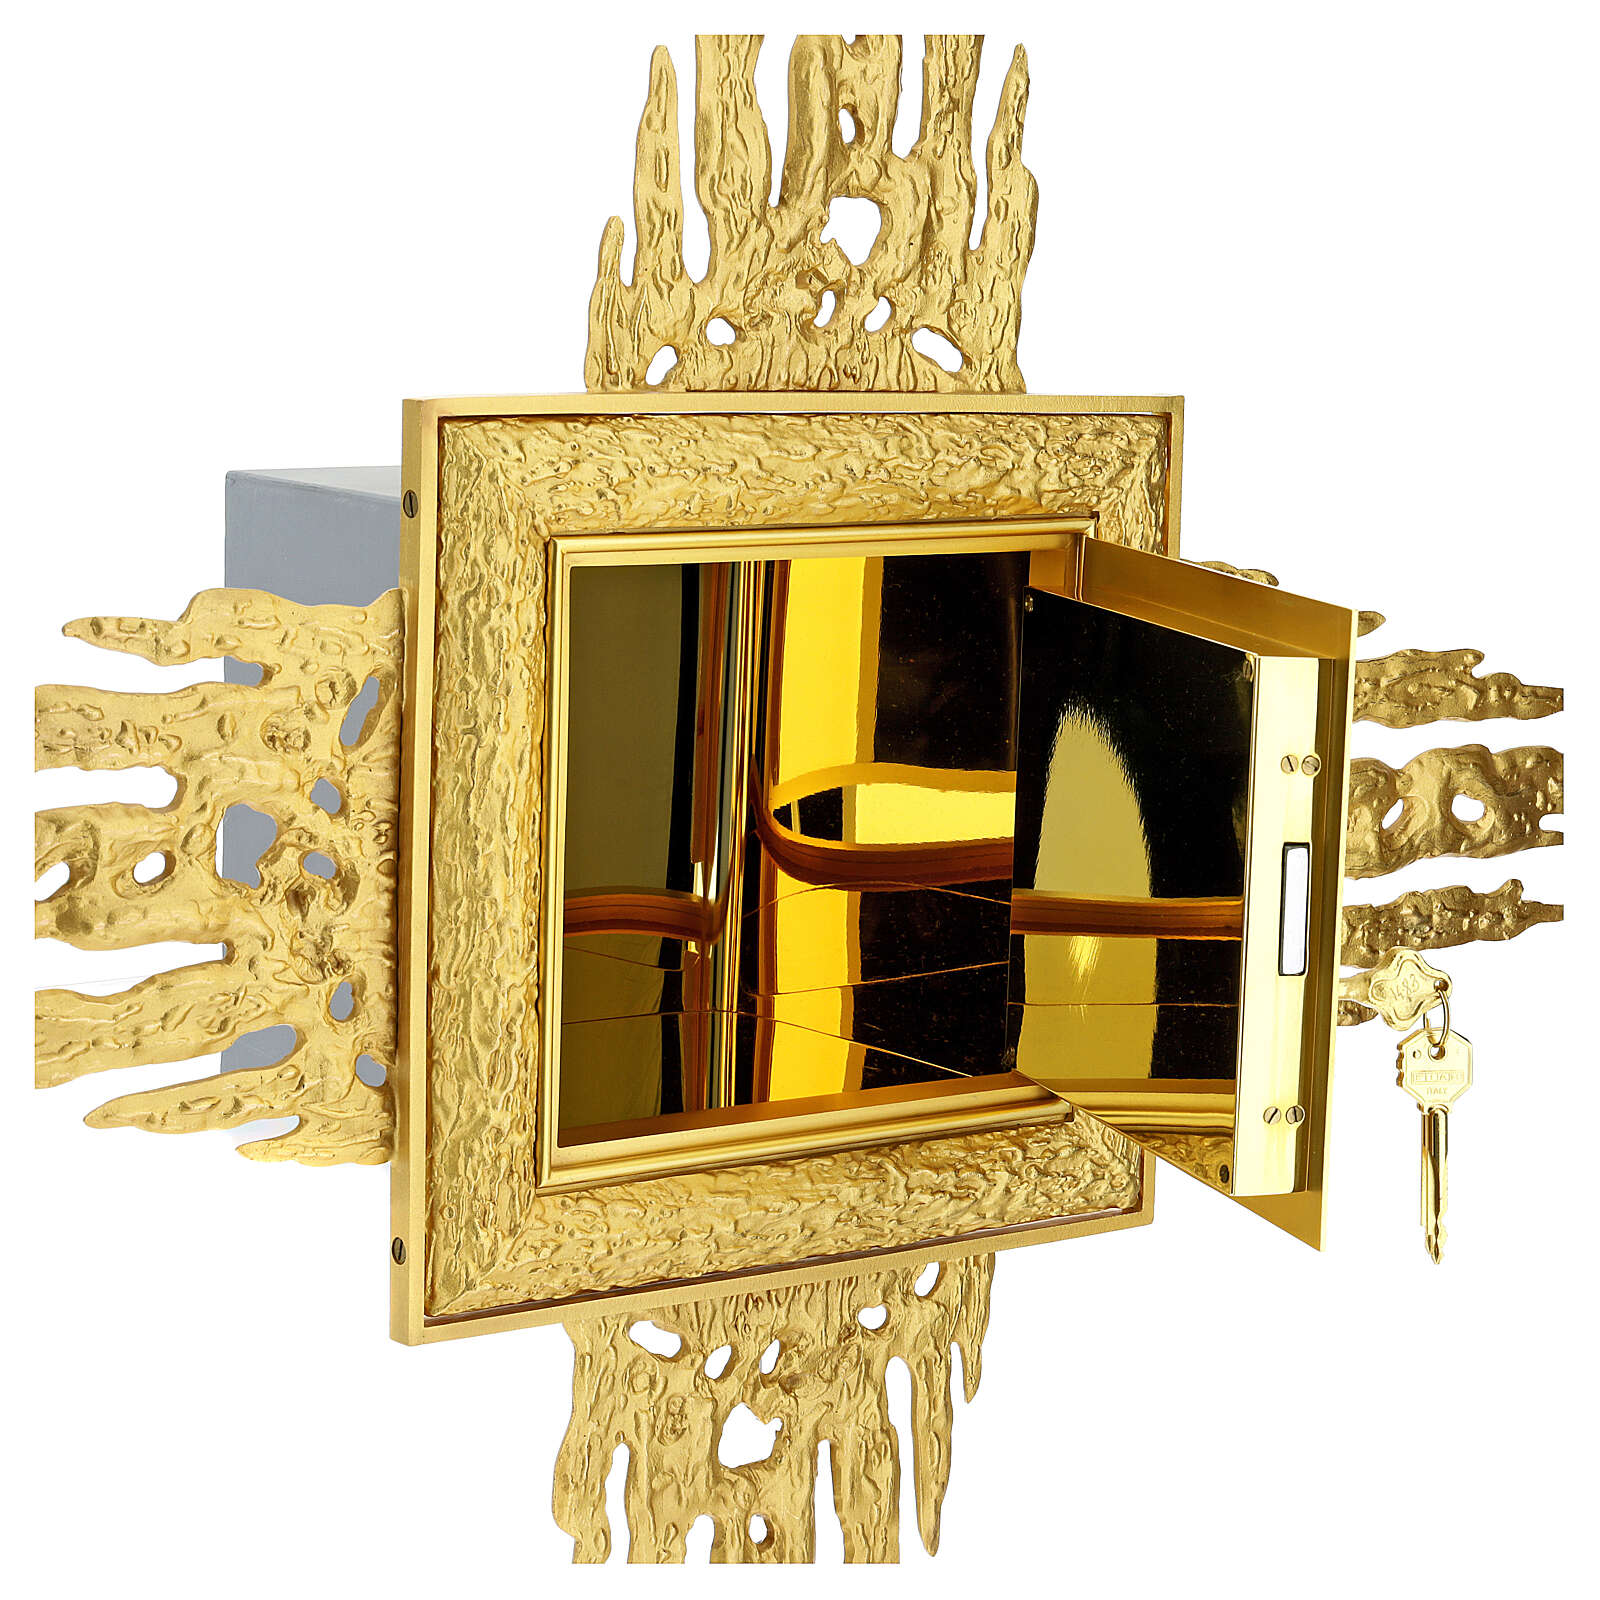 Brass wall-mounted tabernacle with rays 35x35 in and bicolored door 4